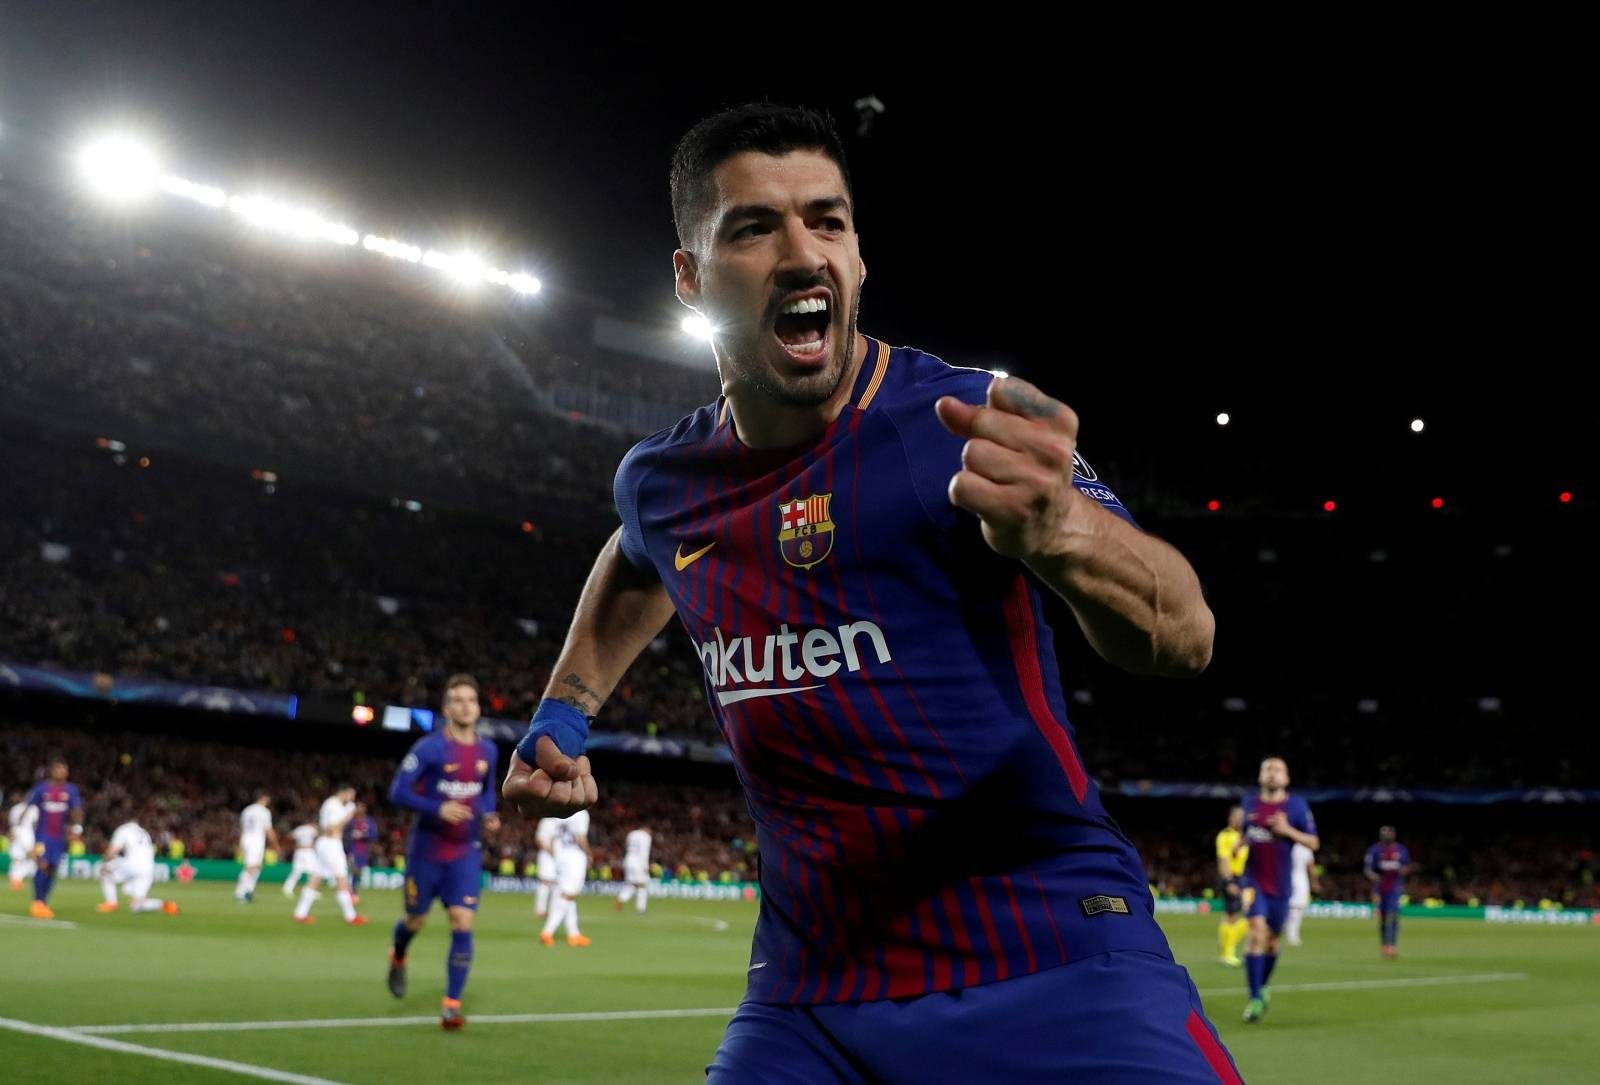 FILE PHOTO: Barcelona's Luis Suarez celebrates scoring their fourth goal in a 4-1 victory over Italy's AS Roma in the first leg of their Champions League quarter-final tie.